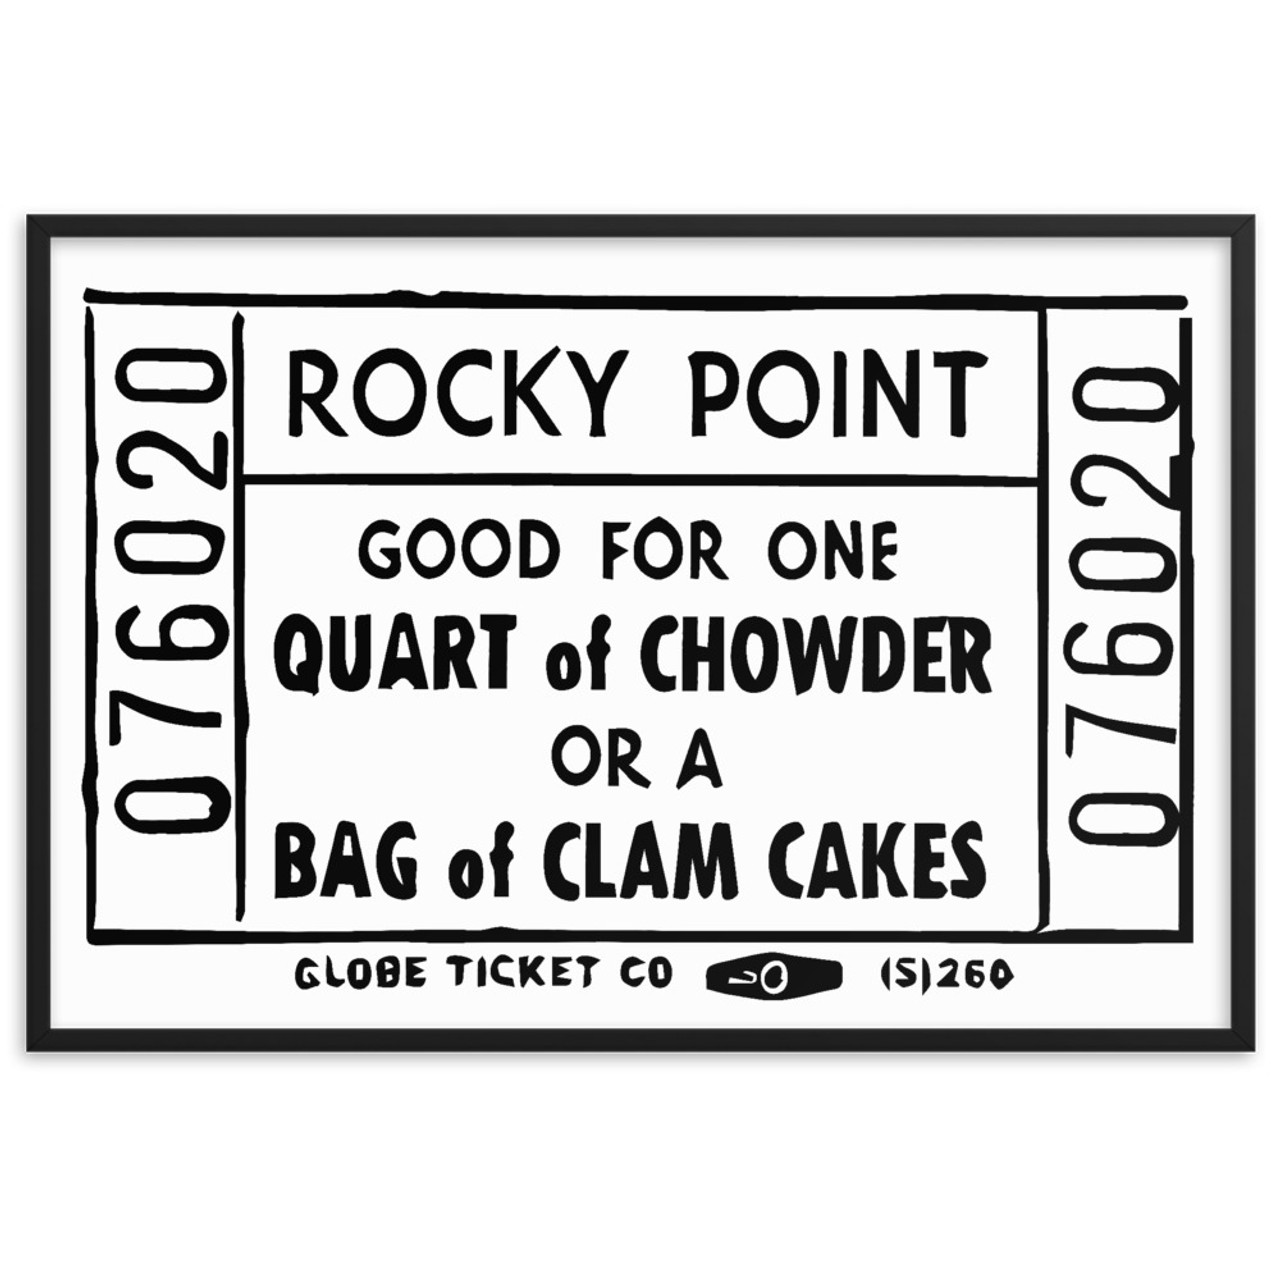 rocky point chowder clam cake ticket 002 framed matte paper poster